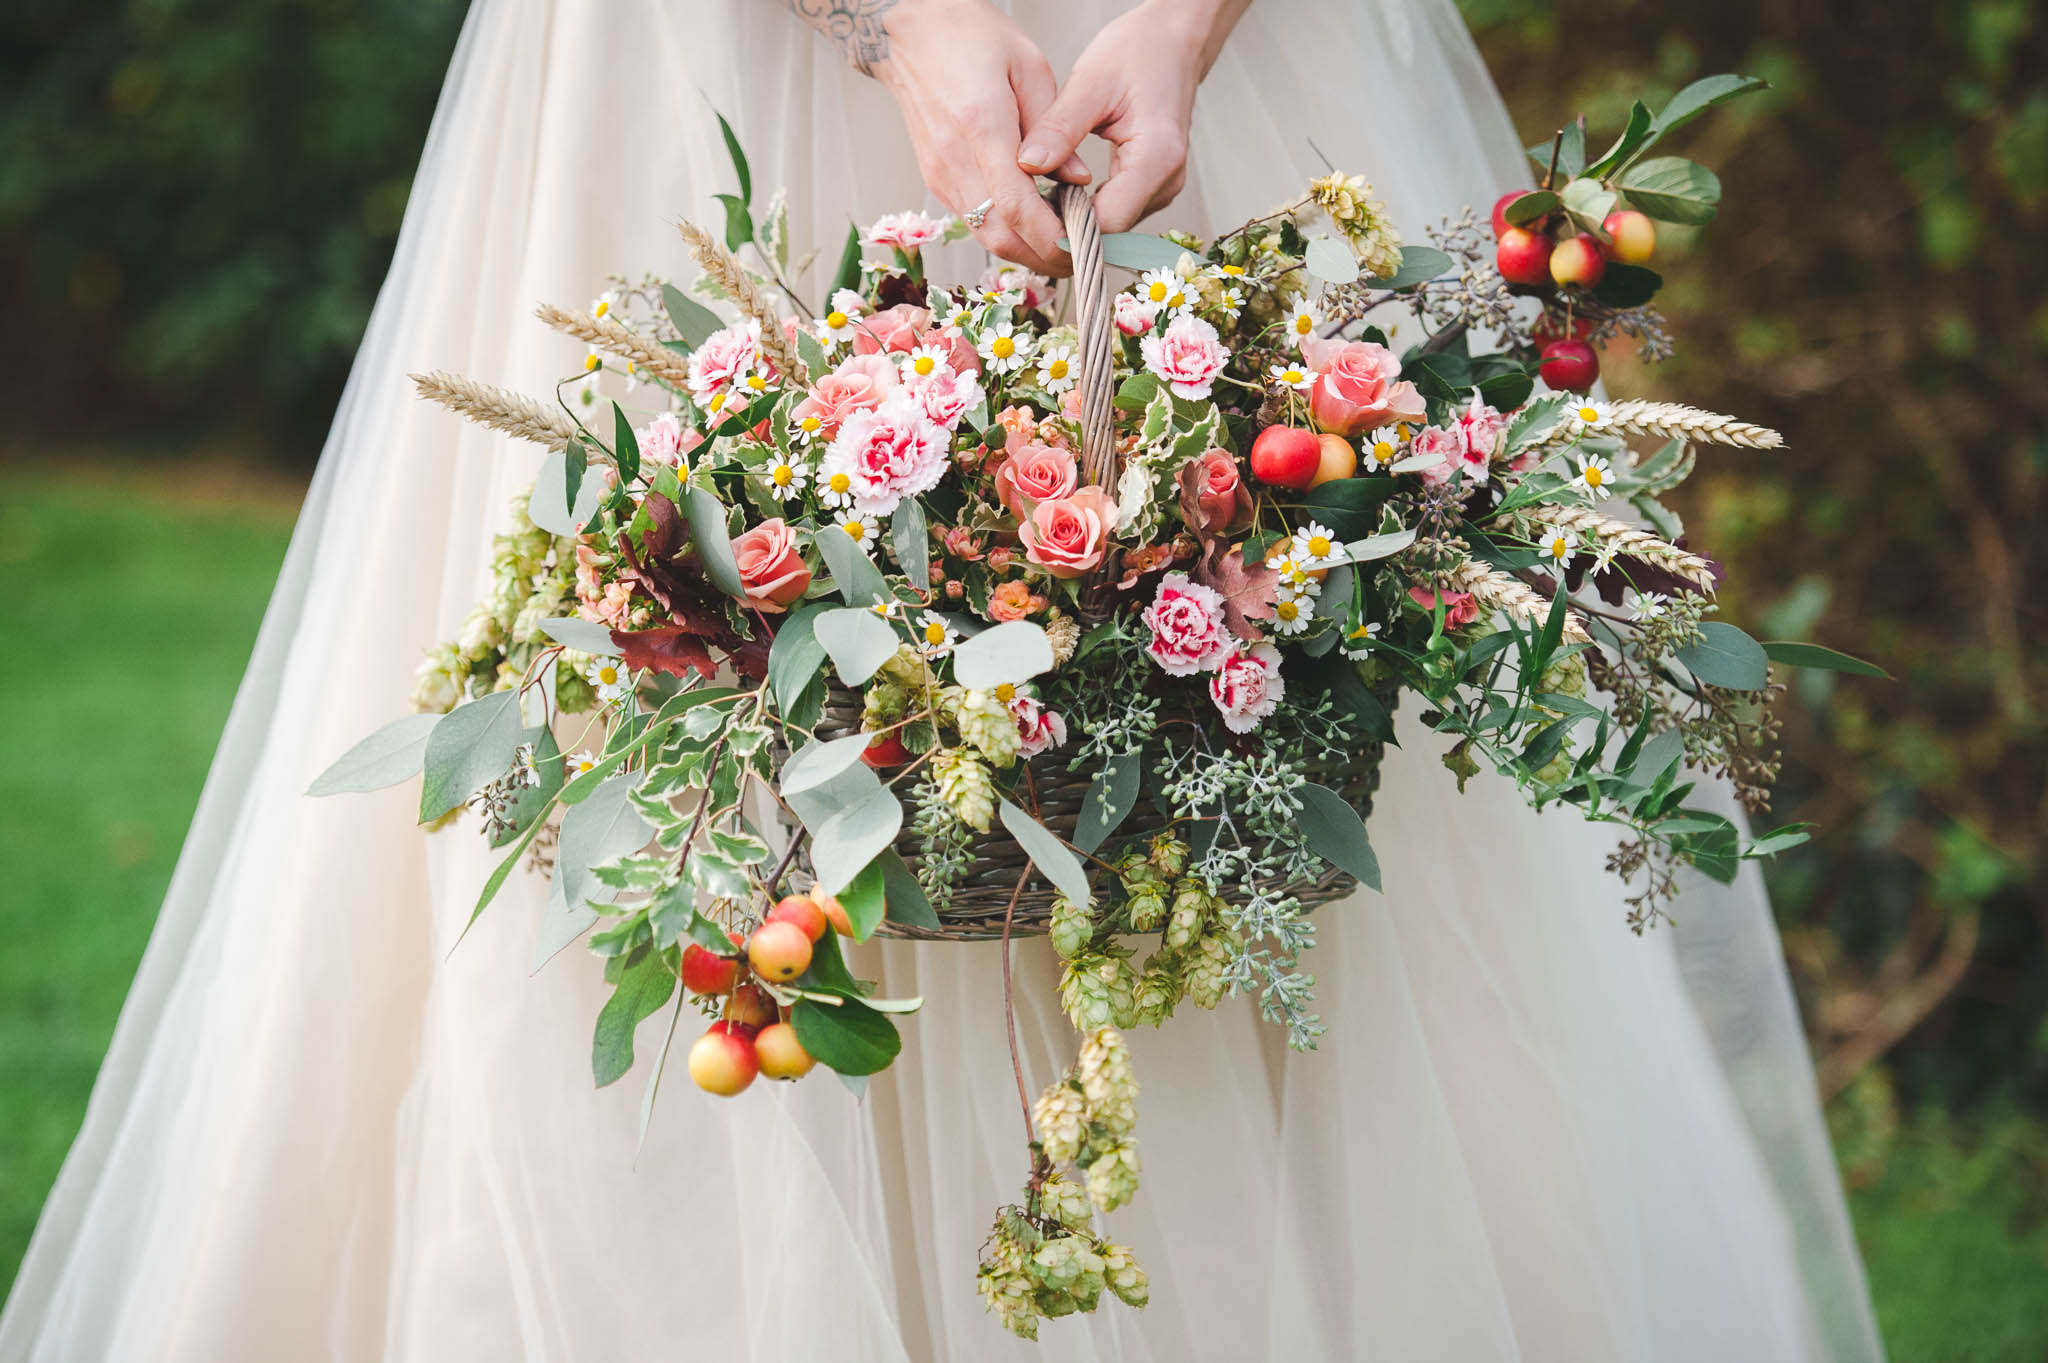 flower bouquets for weddings rustic autumnal country garden wedding inspiration 4143